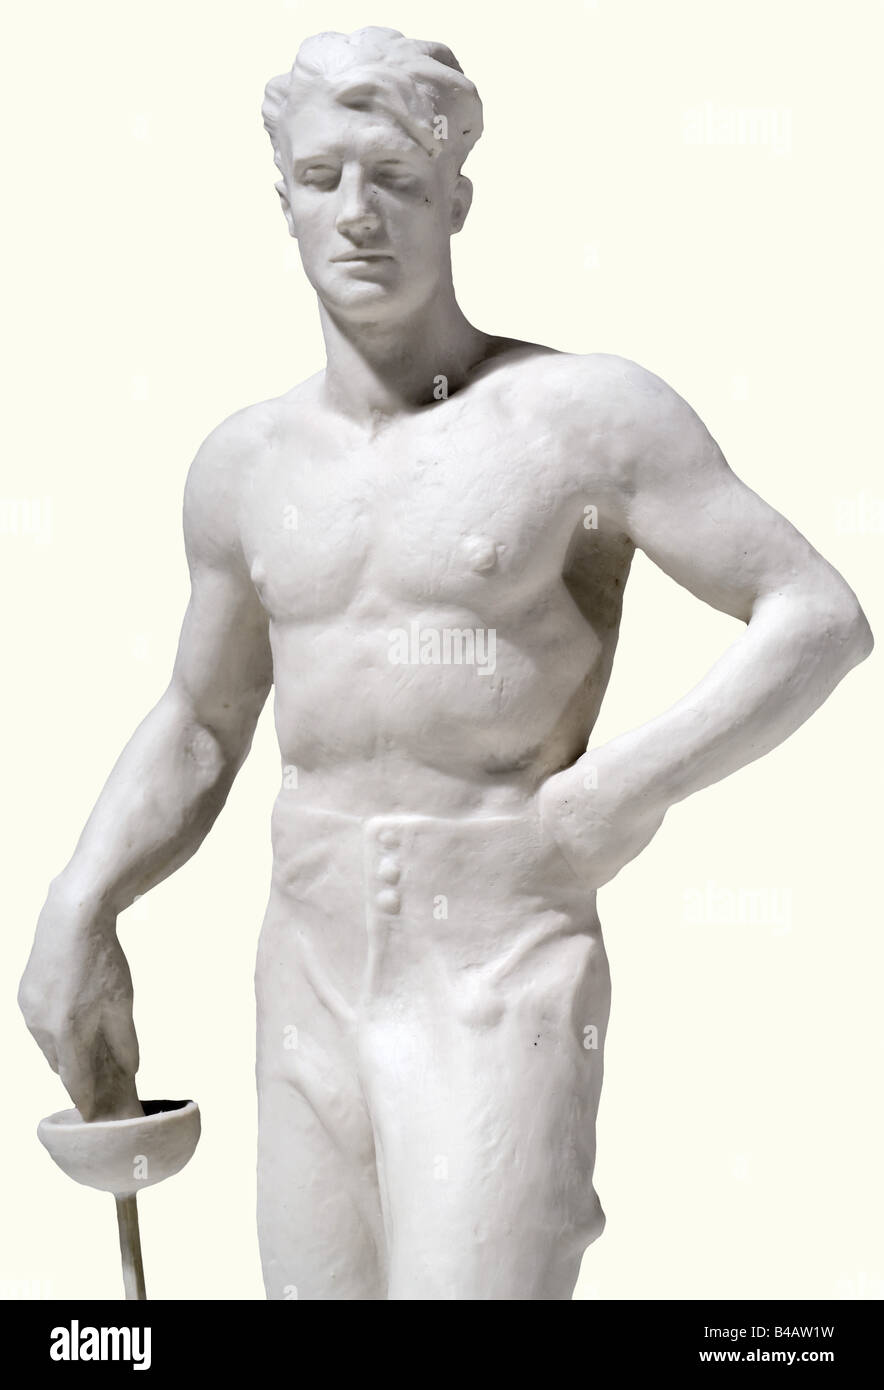 The fencer., White bisque porcelain figure. On the base plate the recessed artist's signature 'O. Obermaier', - Stock Image